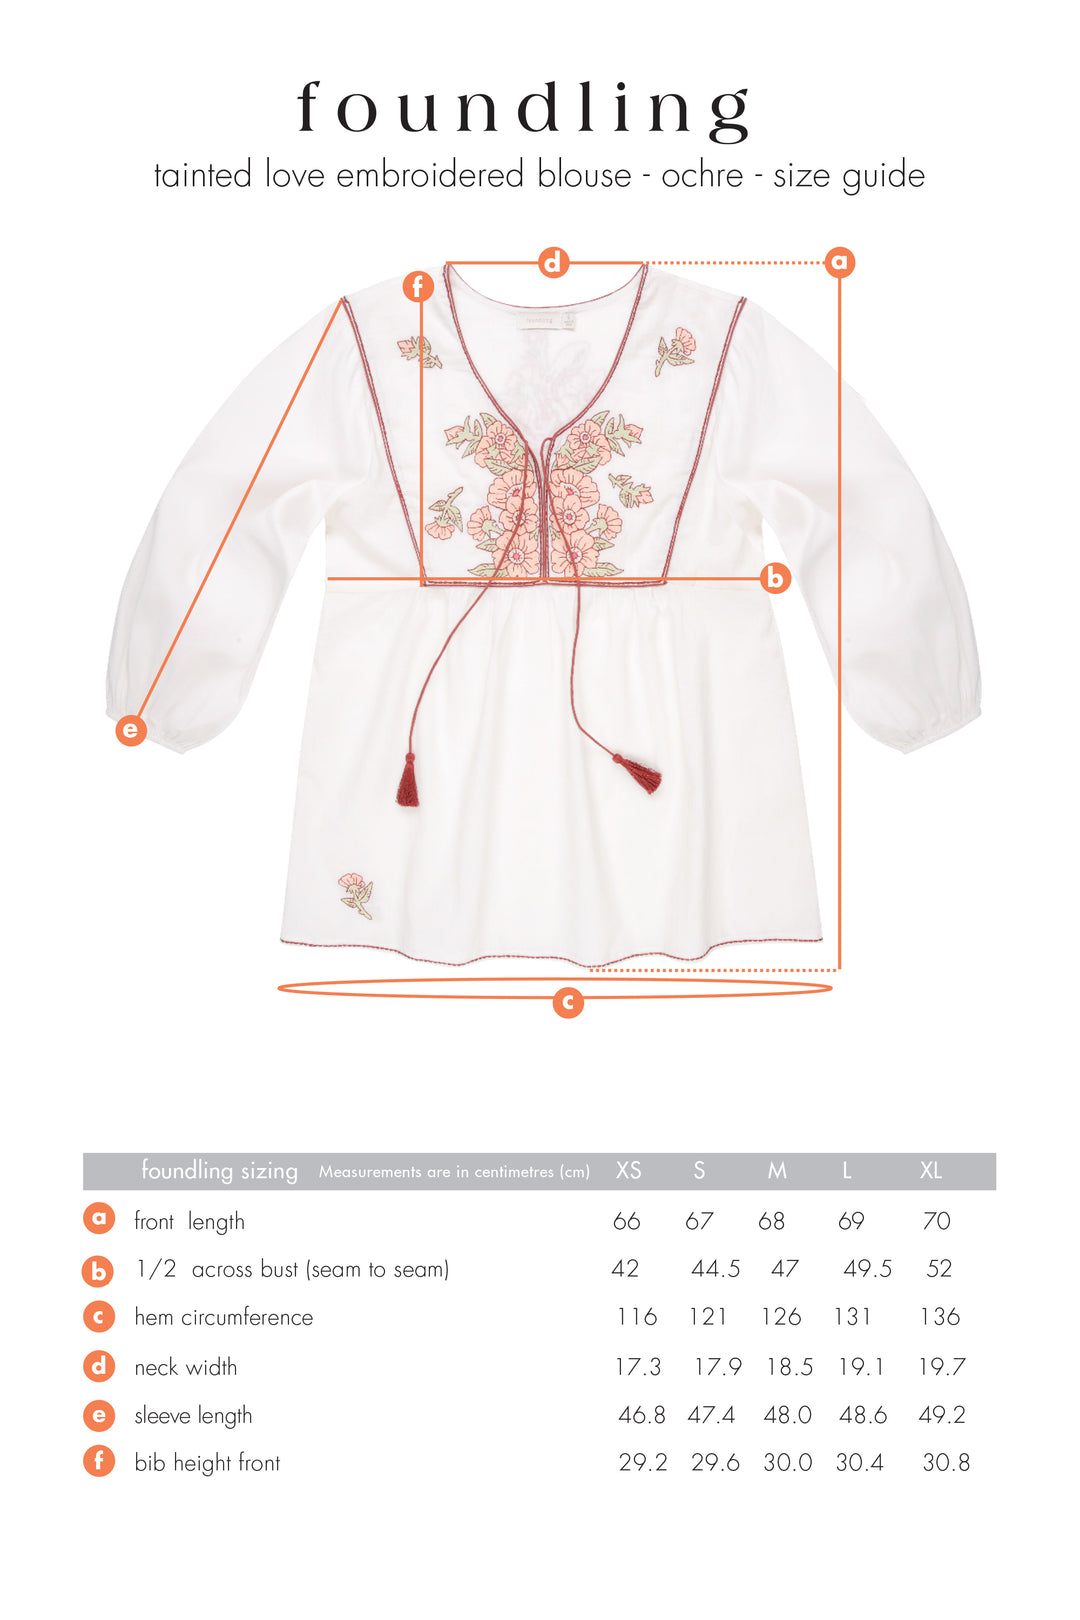 clearance: Tainted Love Embroidered Blouse Ecru